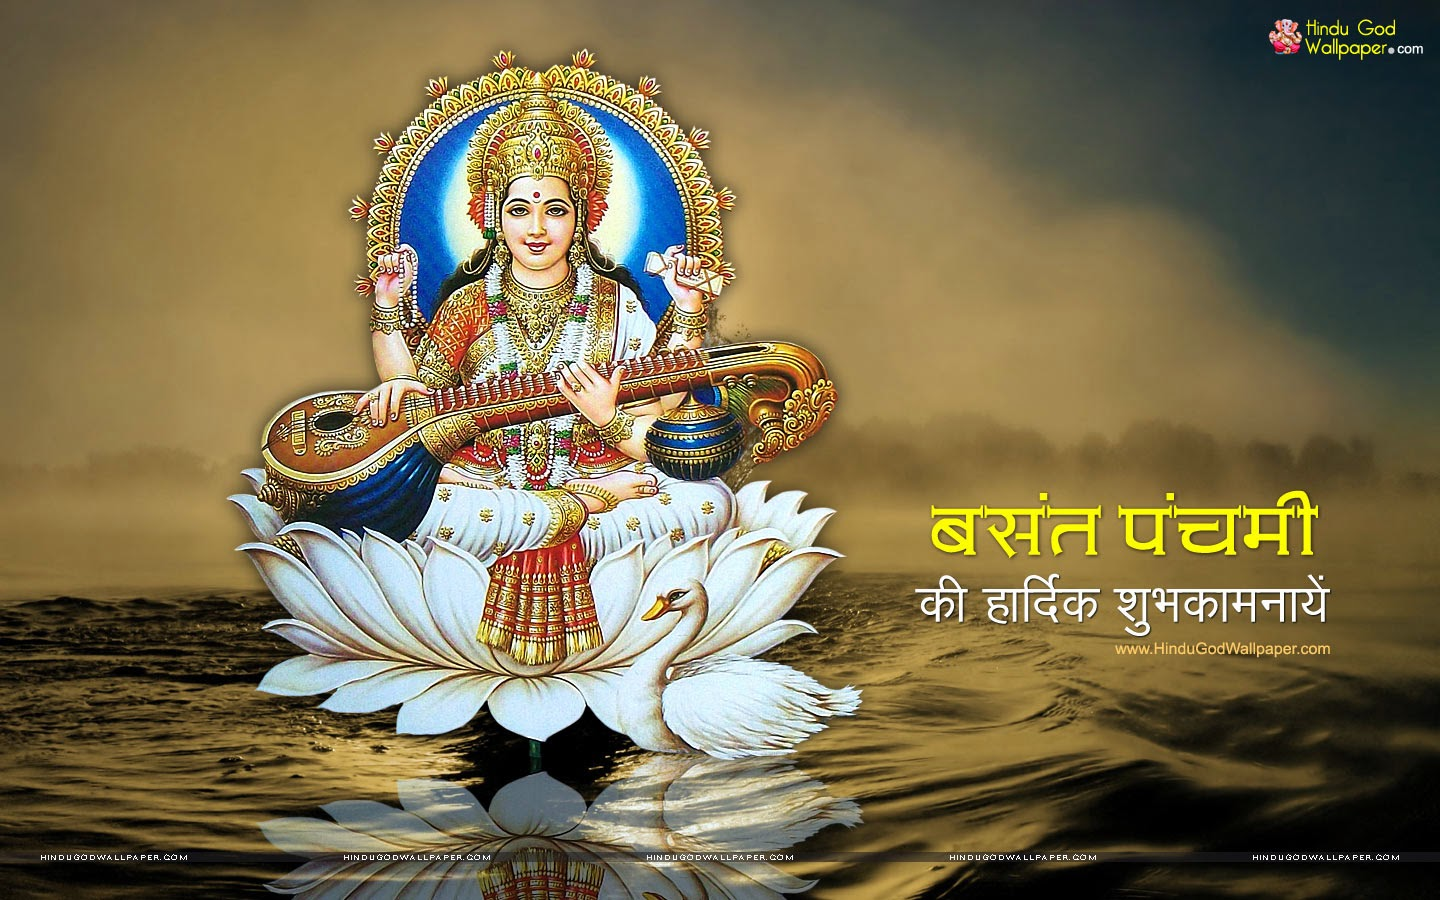 50 best vasant panchami wish pictures 2017 60 beautiful basant panchami greeting pictures m4hsunfo